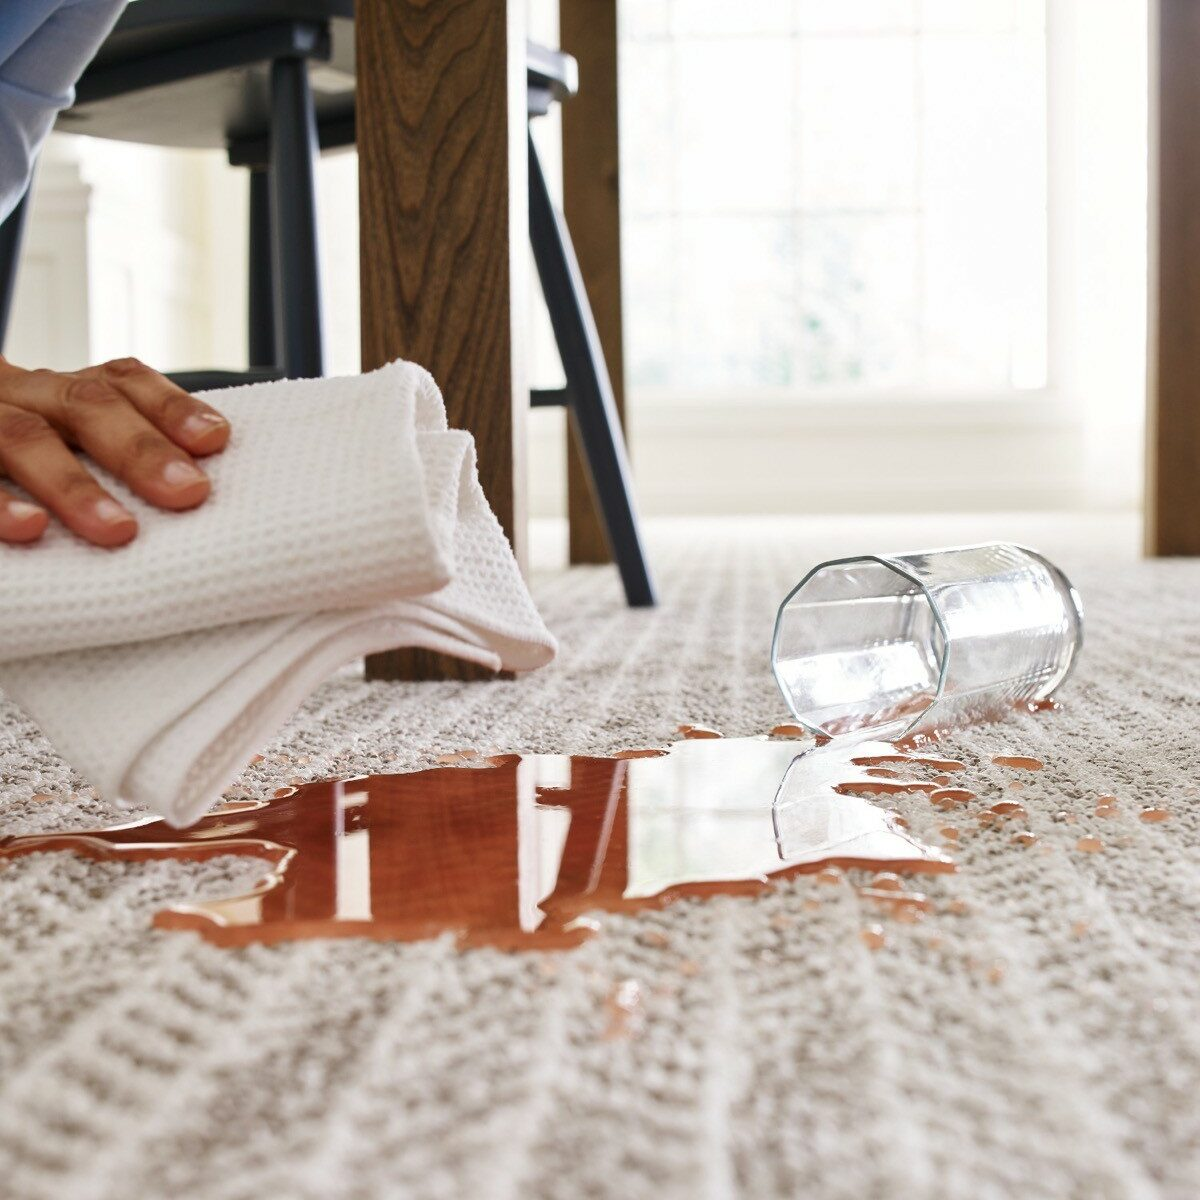 Spill cleaning tips | The Flooring Place